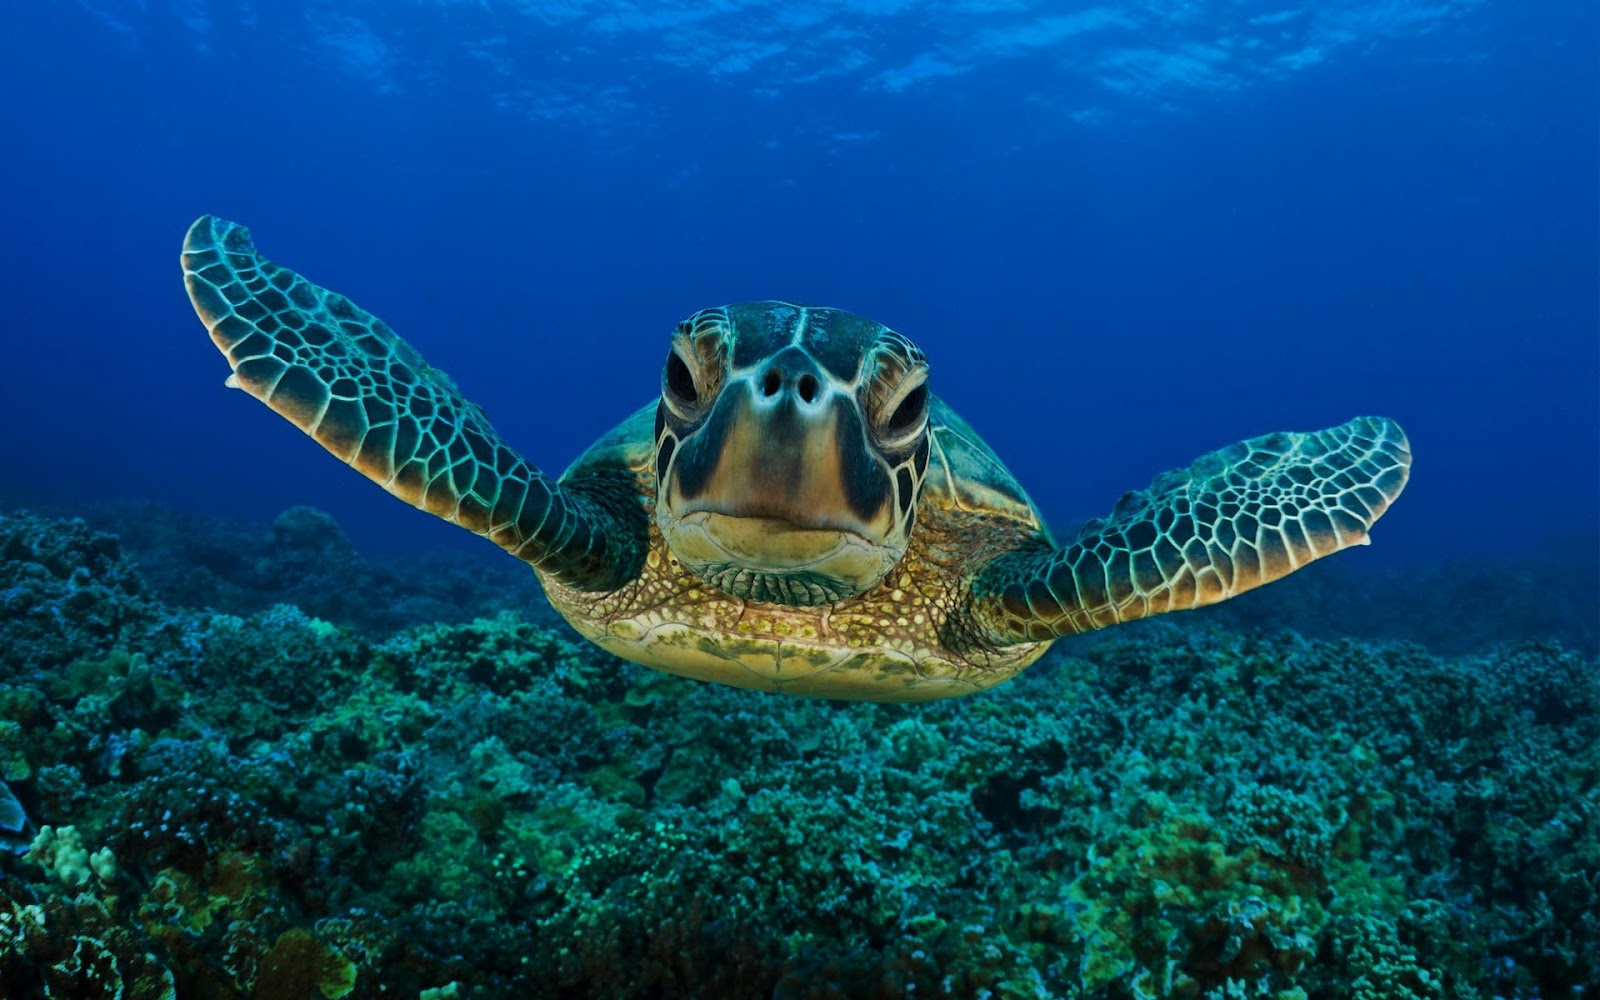 Cool Cute Turtle Background for Your Smartphone